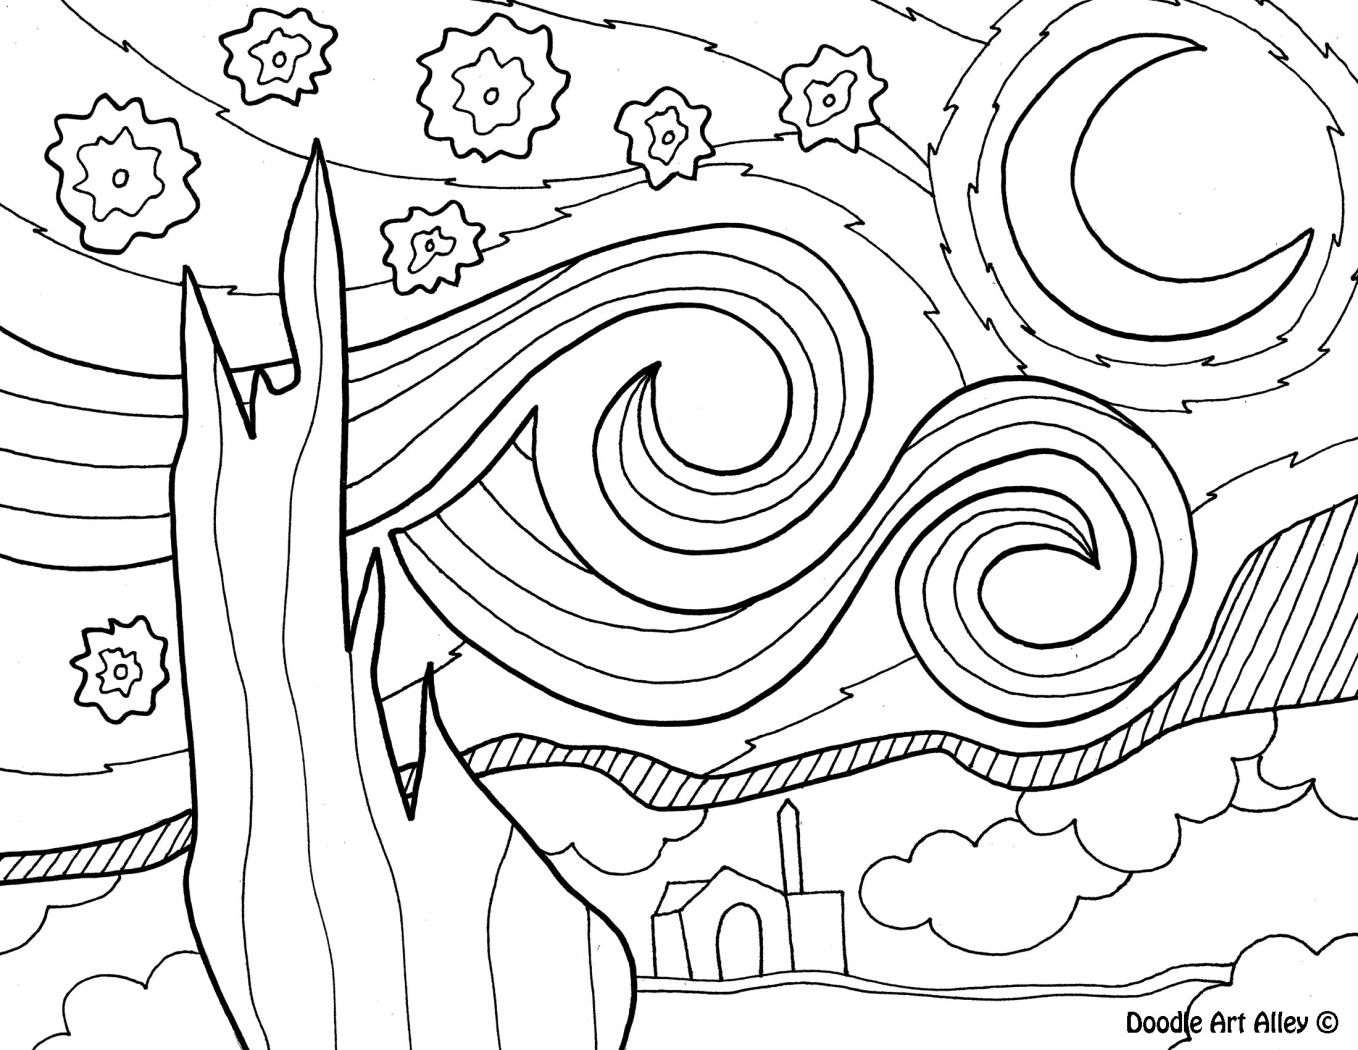 vincent van gogh starry night coloring page vangogh2jpg van gogh coloring famous art paintings van night gogh starry page coloring vincent